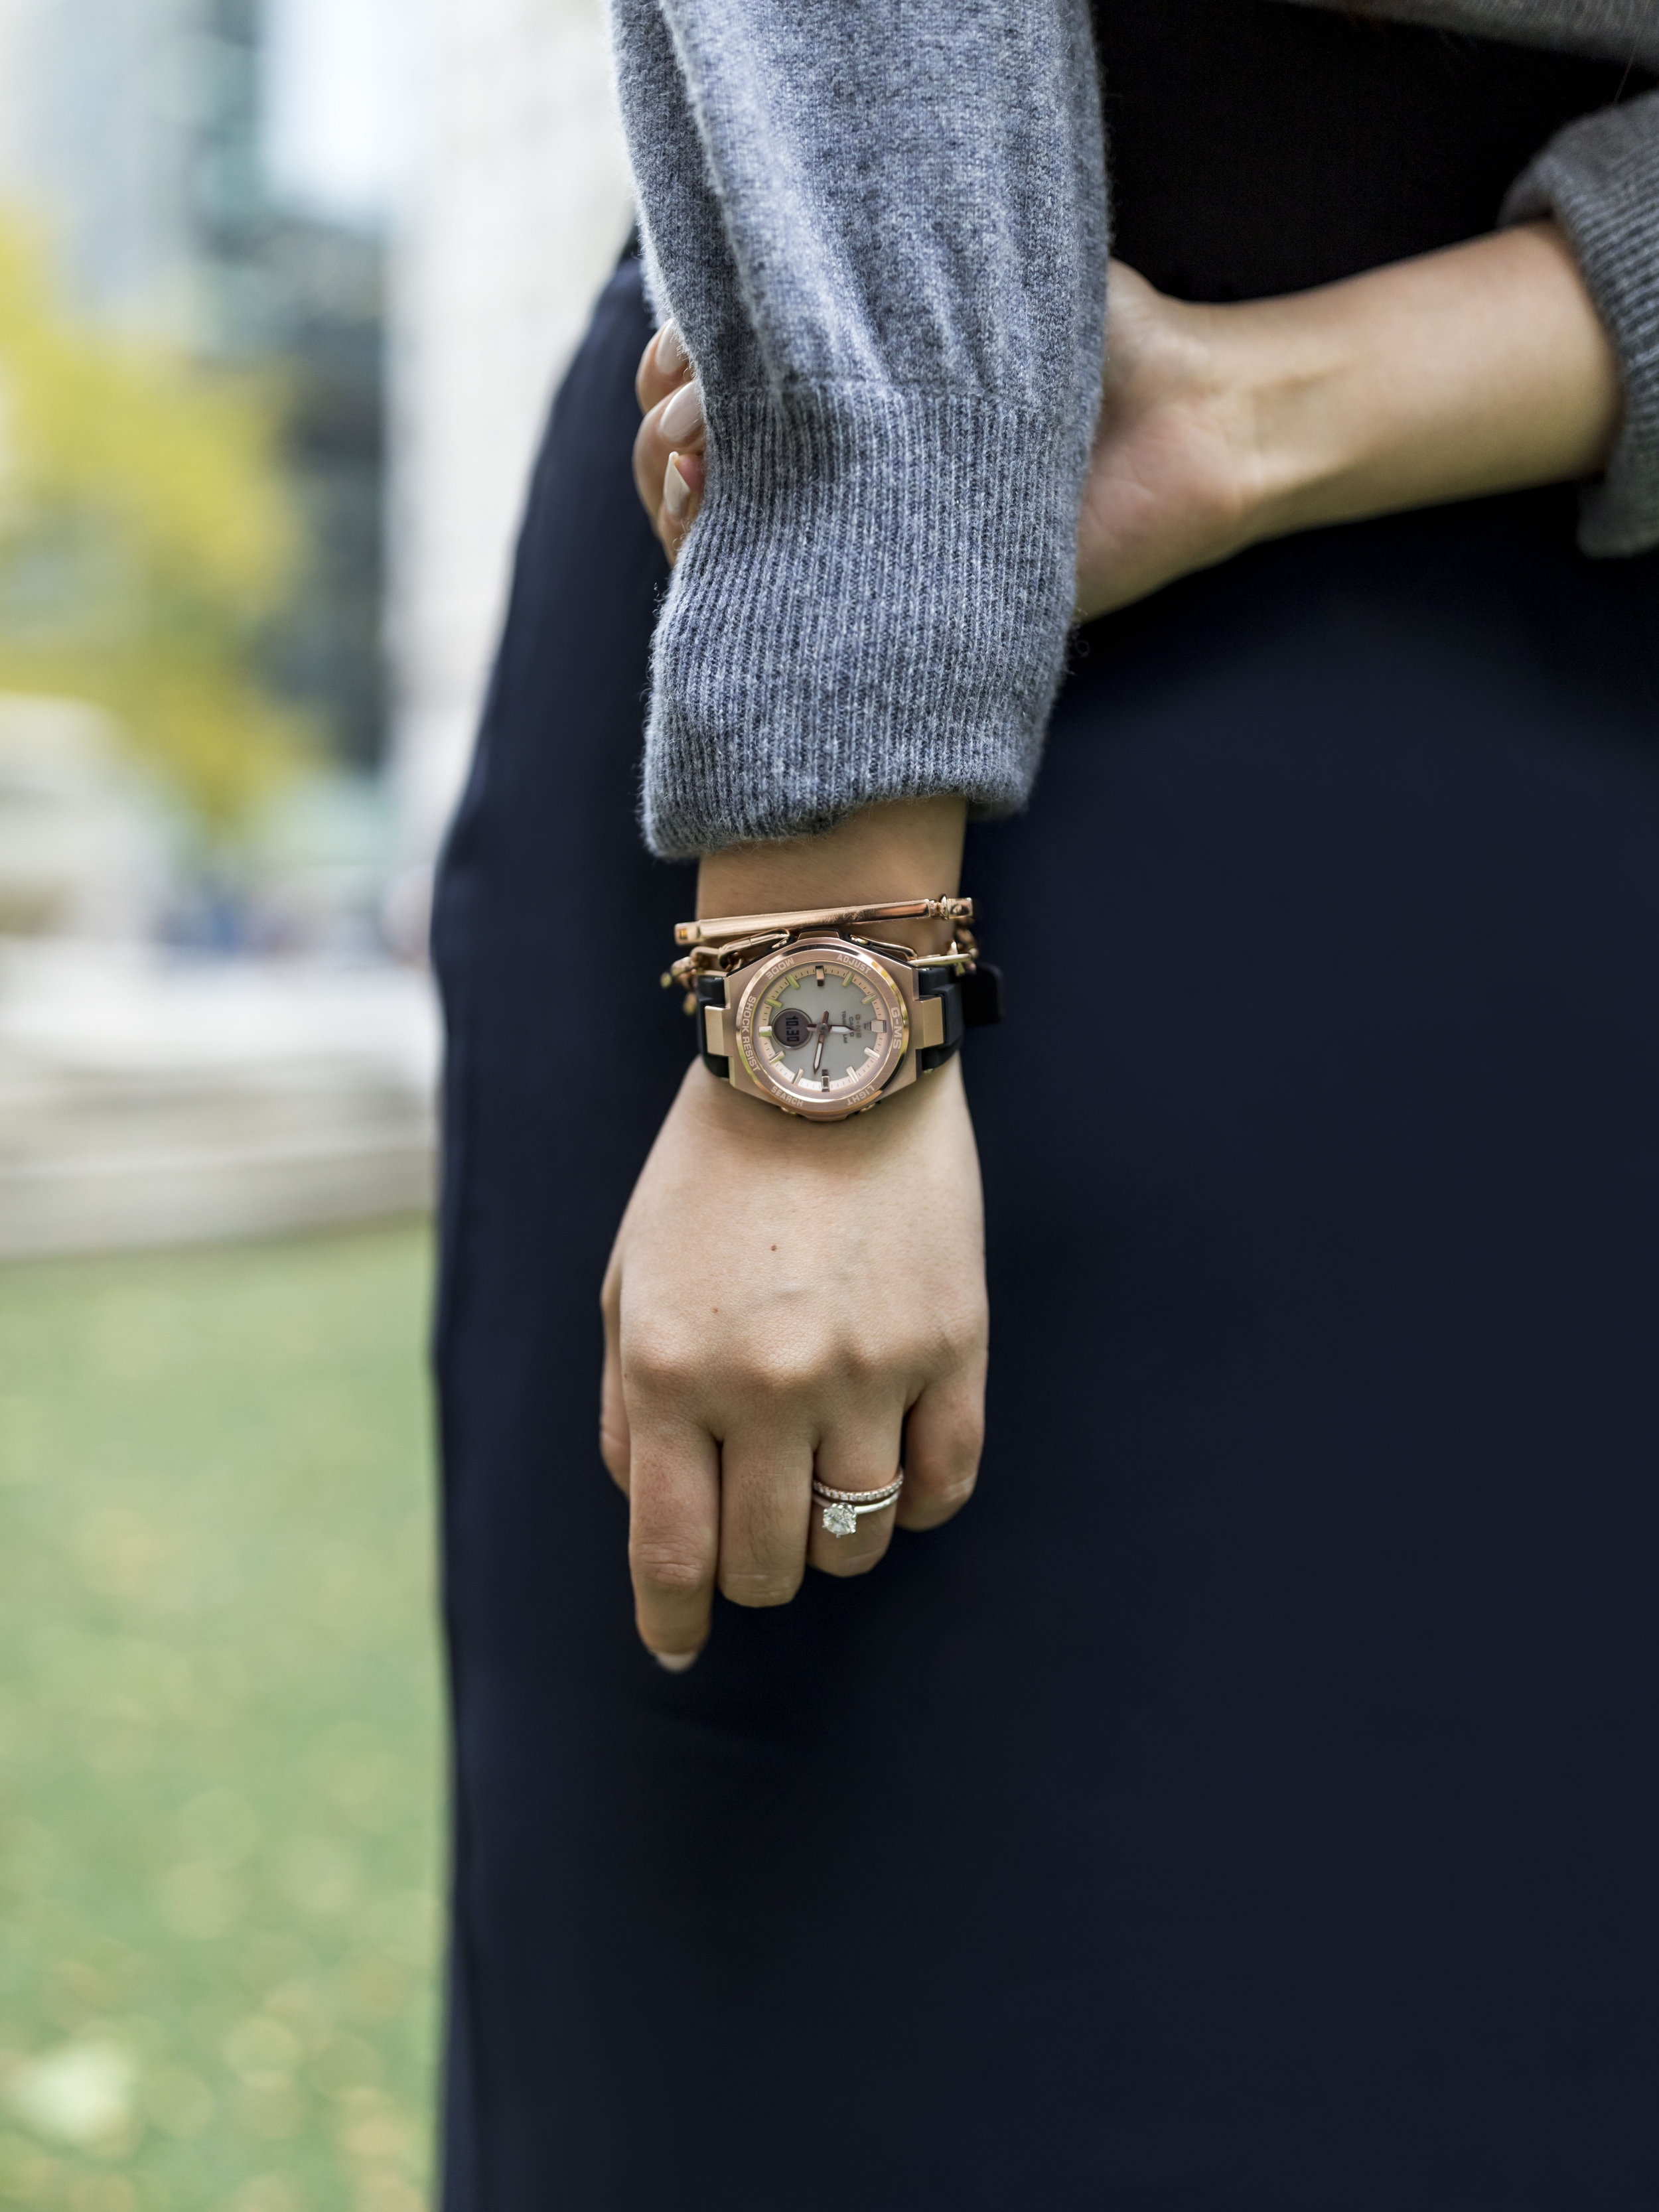 I received this rose gold watch from the G-MS line as a gift from G-SHOCK; photo by Ashley Gallerani Photography.